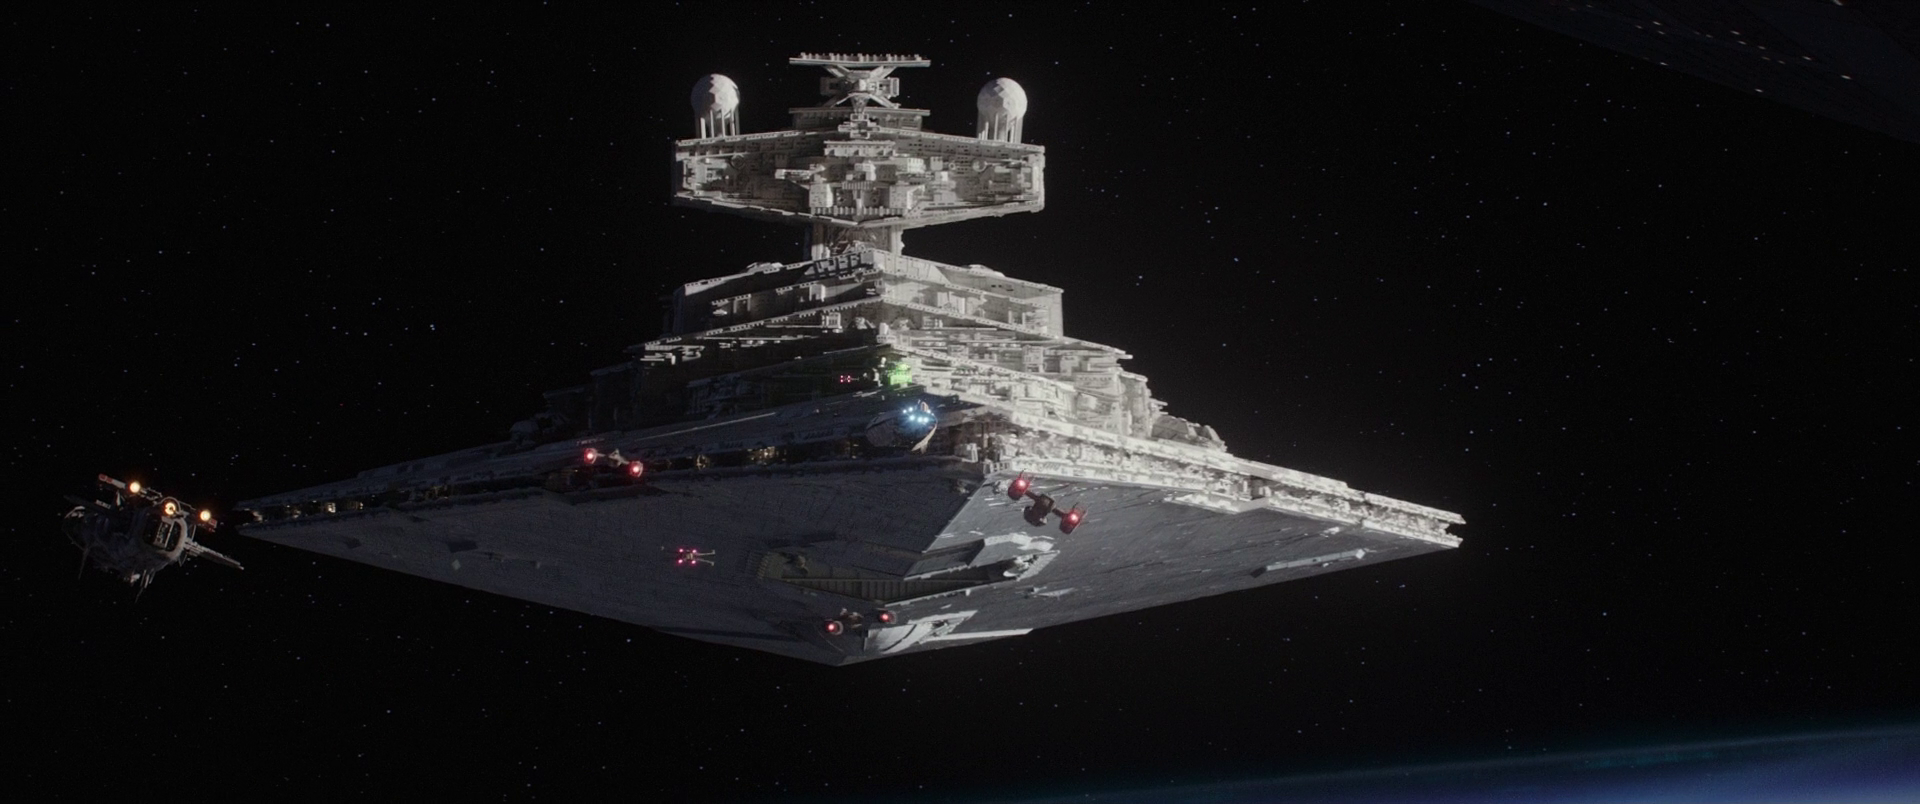 Star Wars Star Destroyer Wallpaper Posted By Ryan Sellers